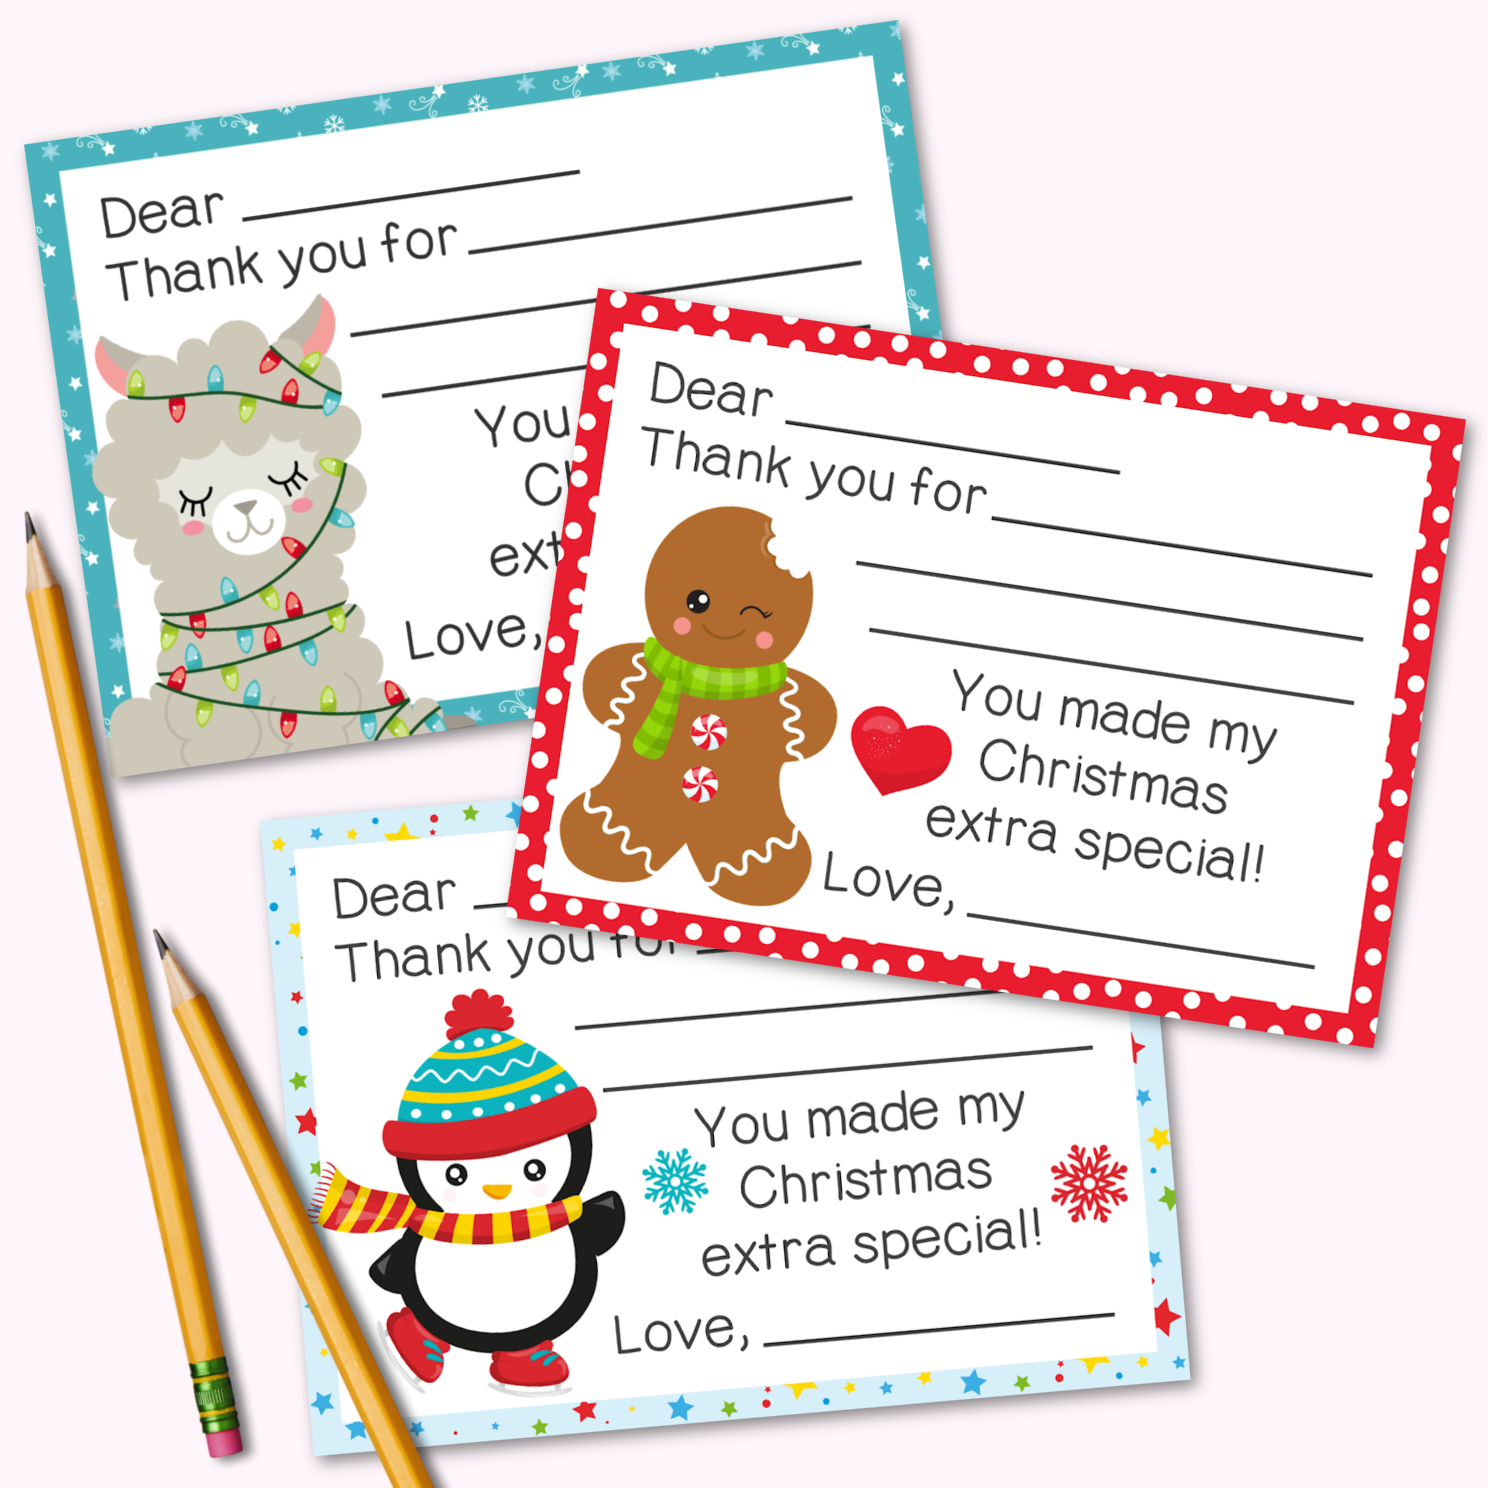 Fill-in-the-Blank Christmas Cards for Kids